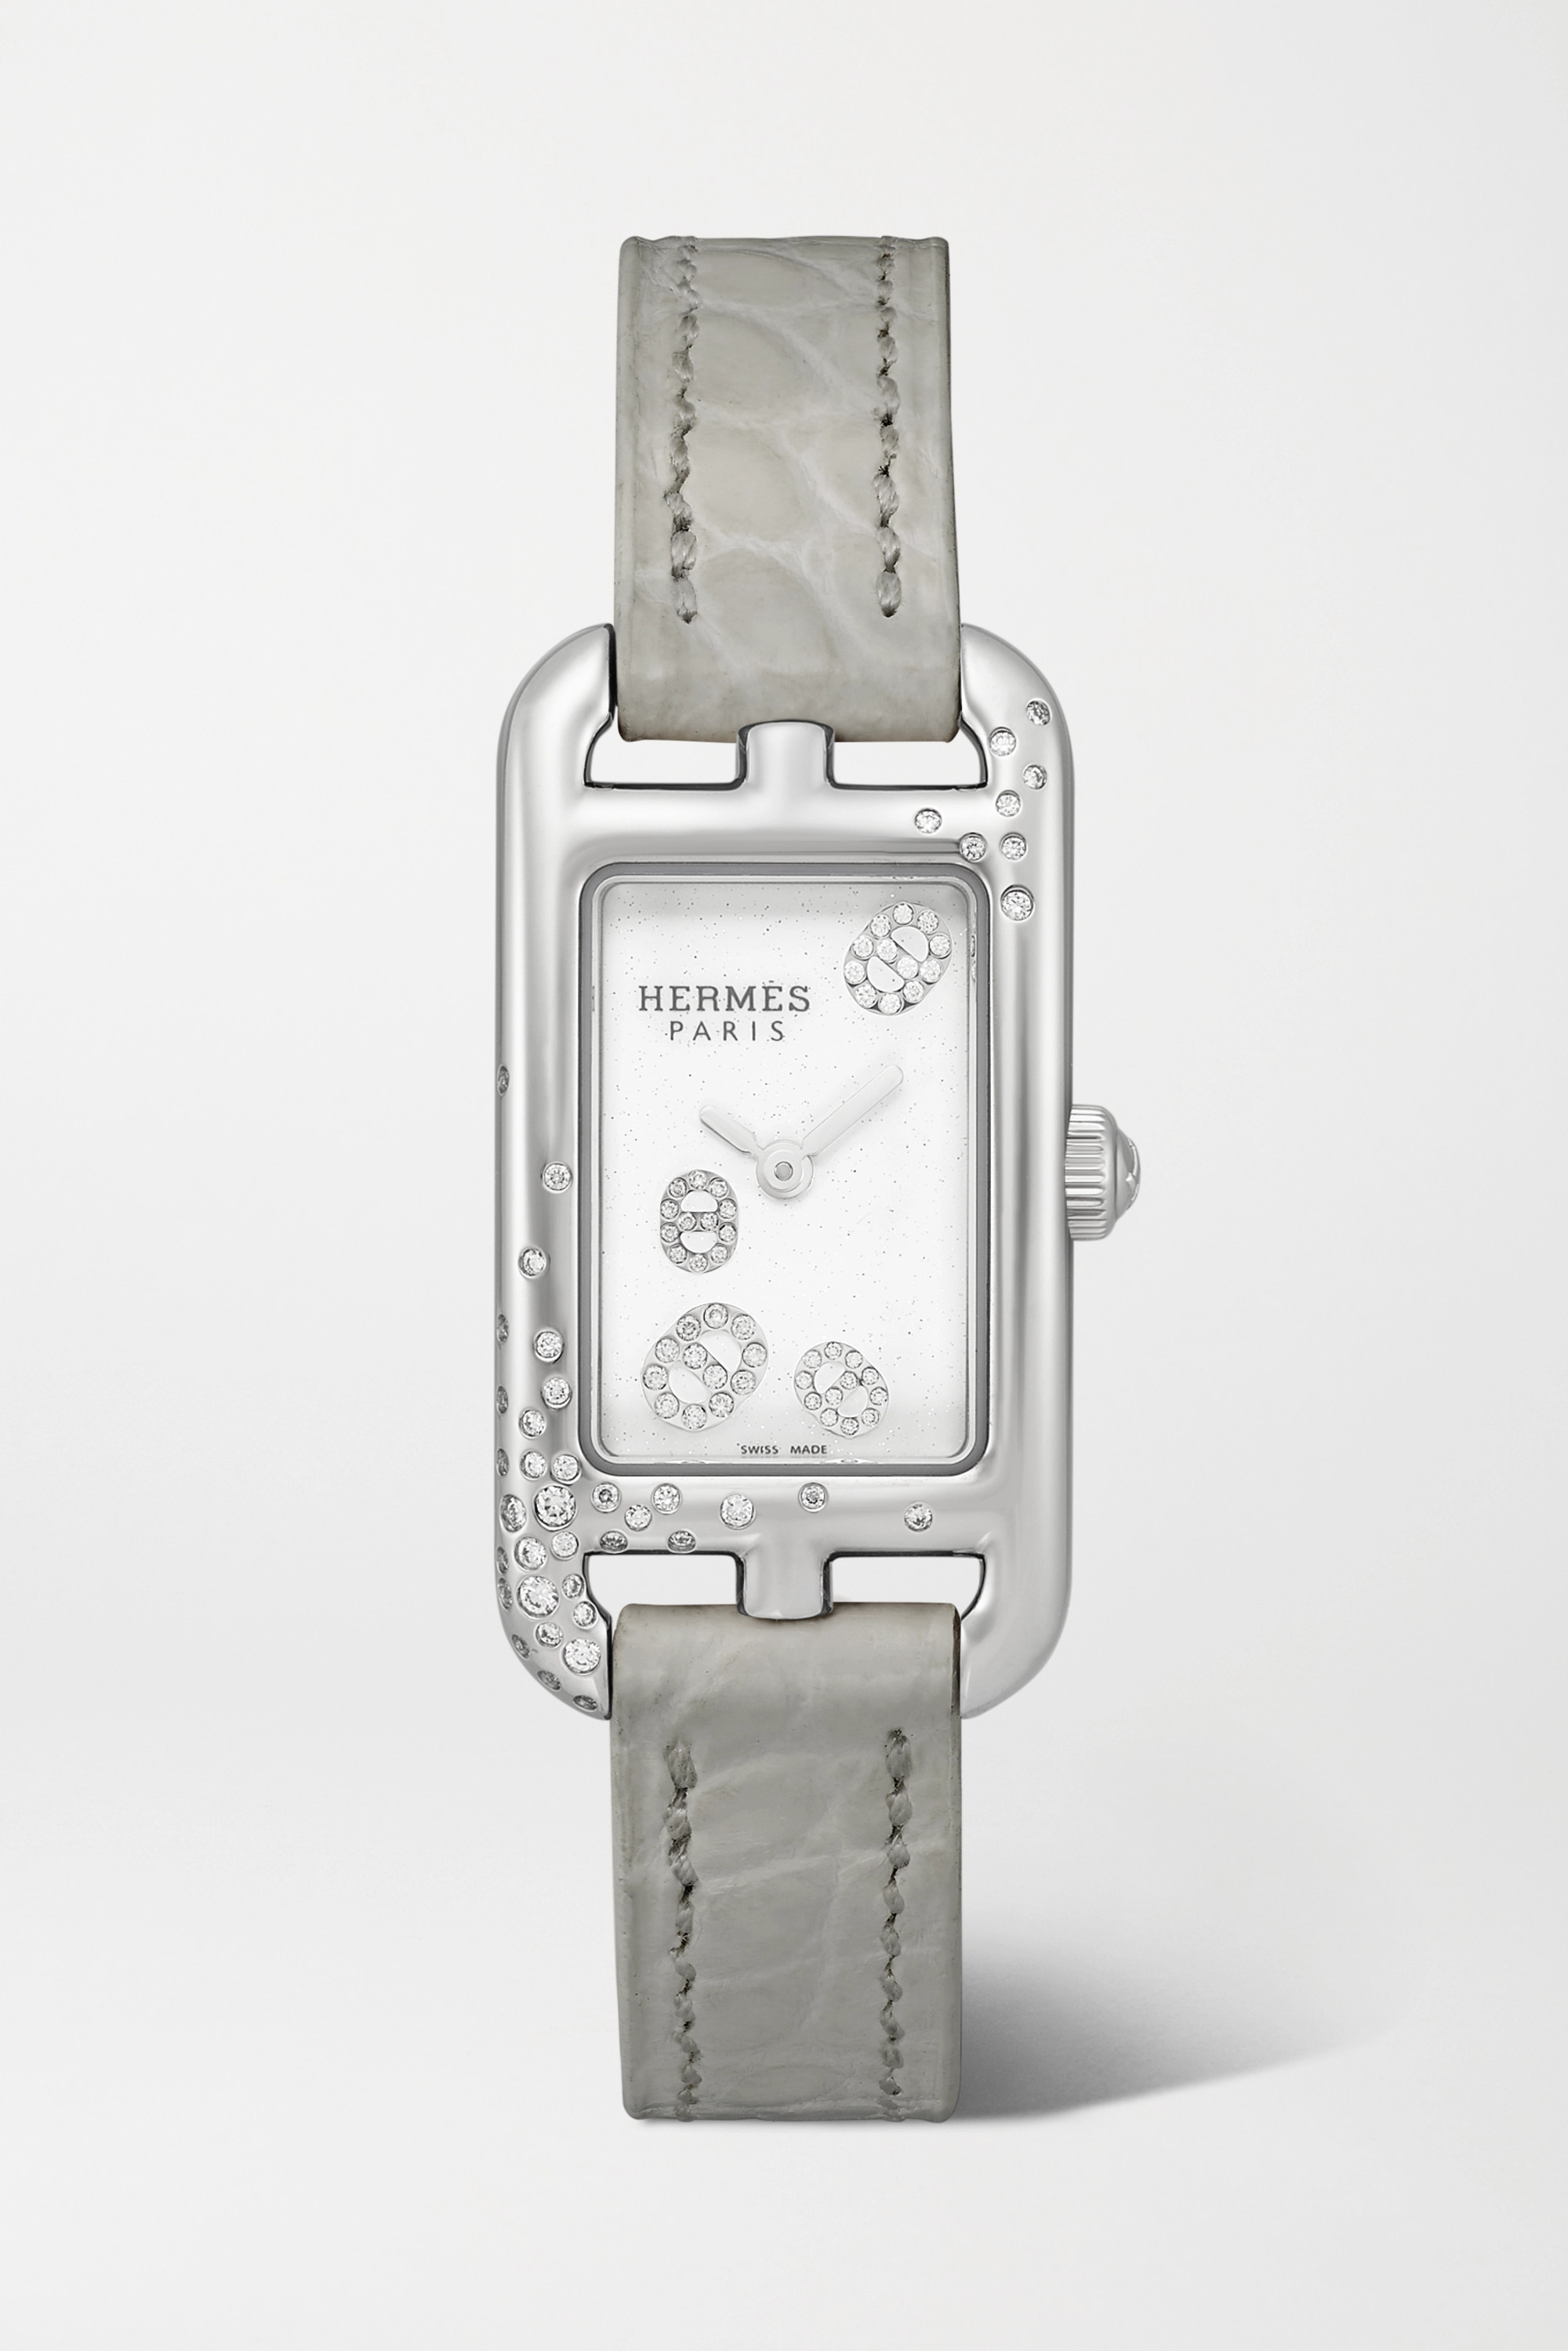 Hermès Timepieces Nantucket 17mm very small stainless steel, alligator and diamond watch